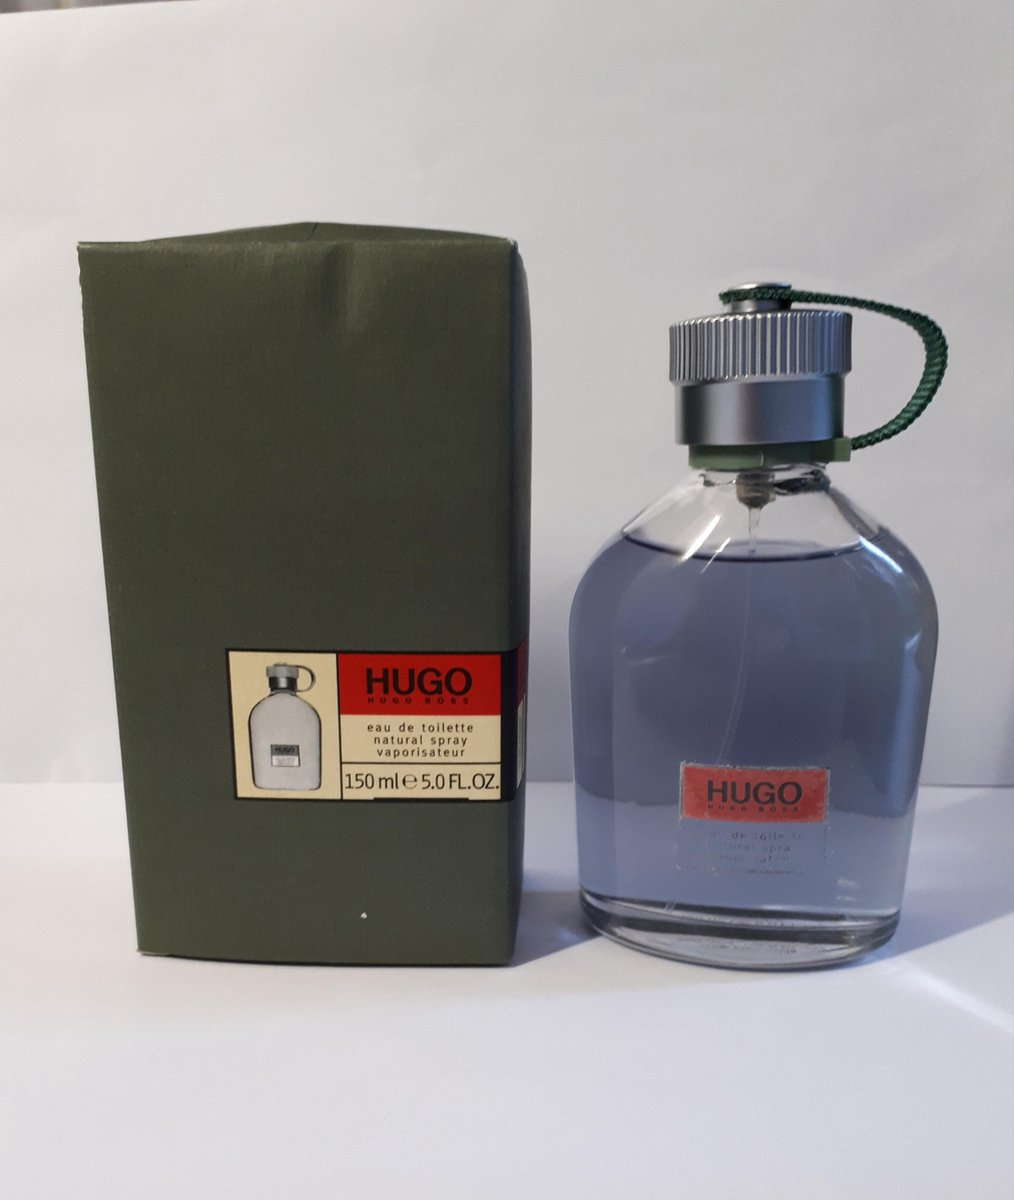 HUGO , Hugo Boss, Eau de toilette, 150 ml, spray - Vintage